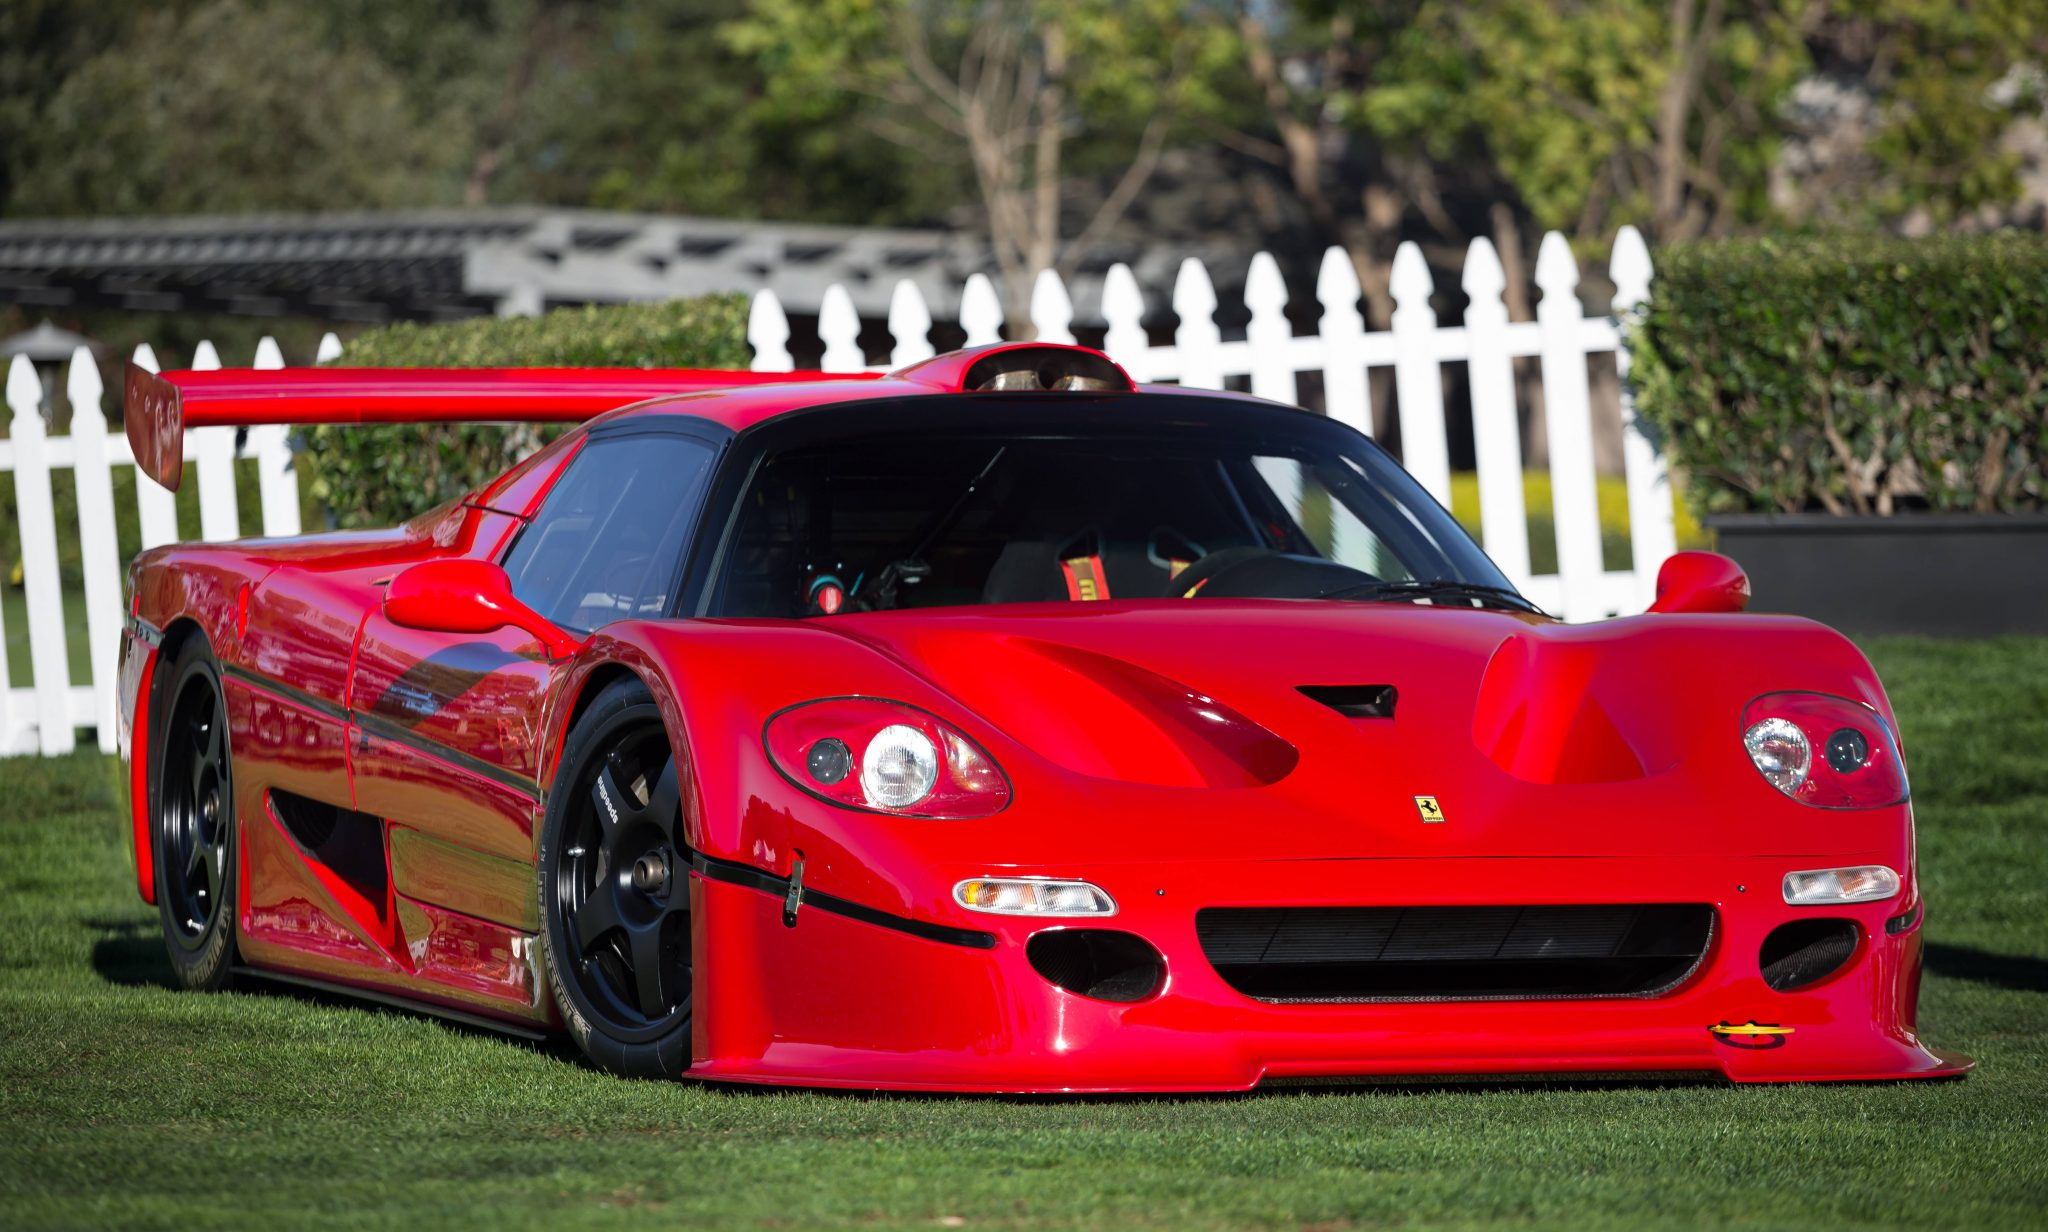 Hd Wallpapers Cars Ferrari 1996 Ferrari F50 Gt Ferrari Supercars Net